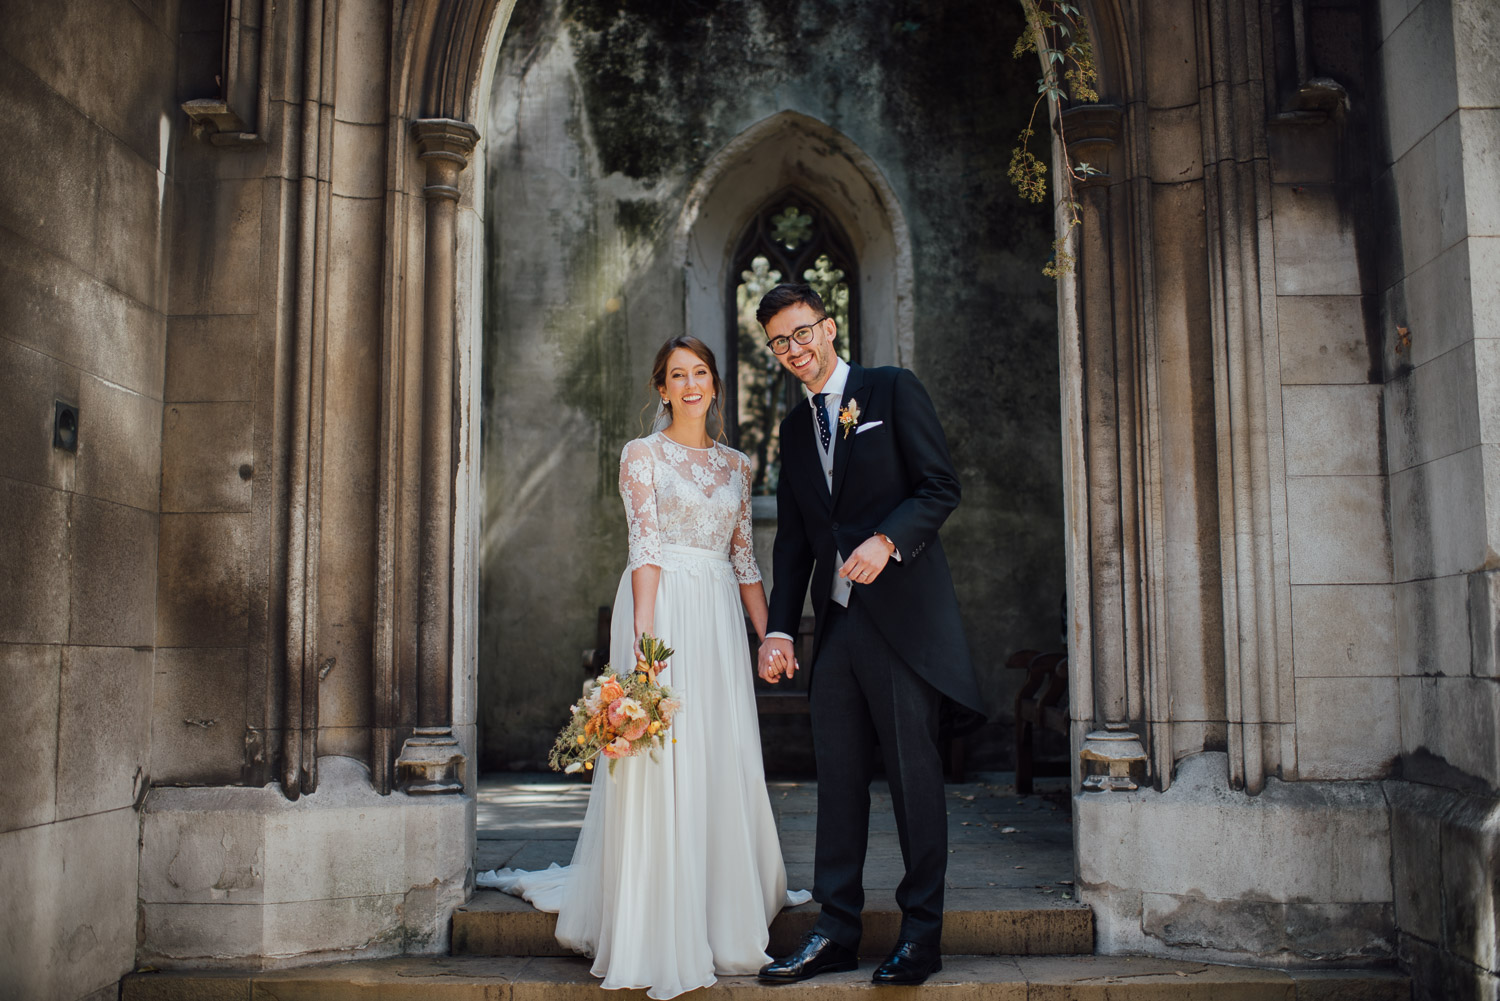 couple portraits wilton's music hall wedding by london wedding photographer the shannons photography